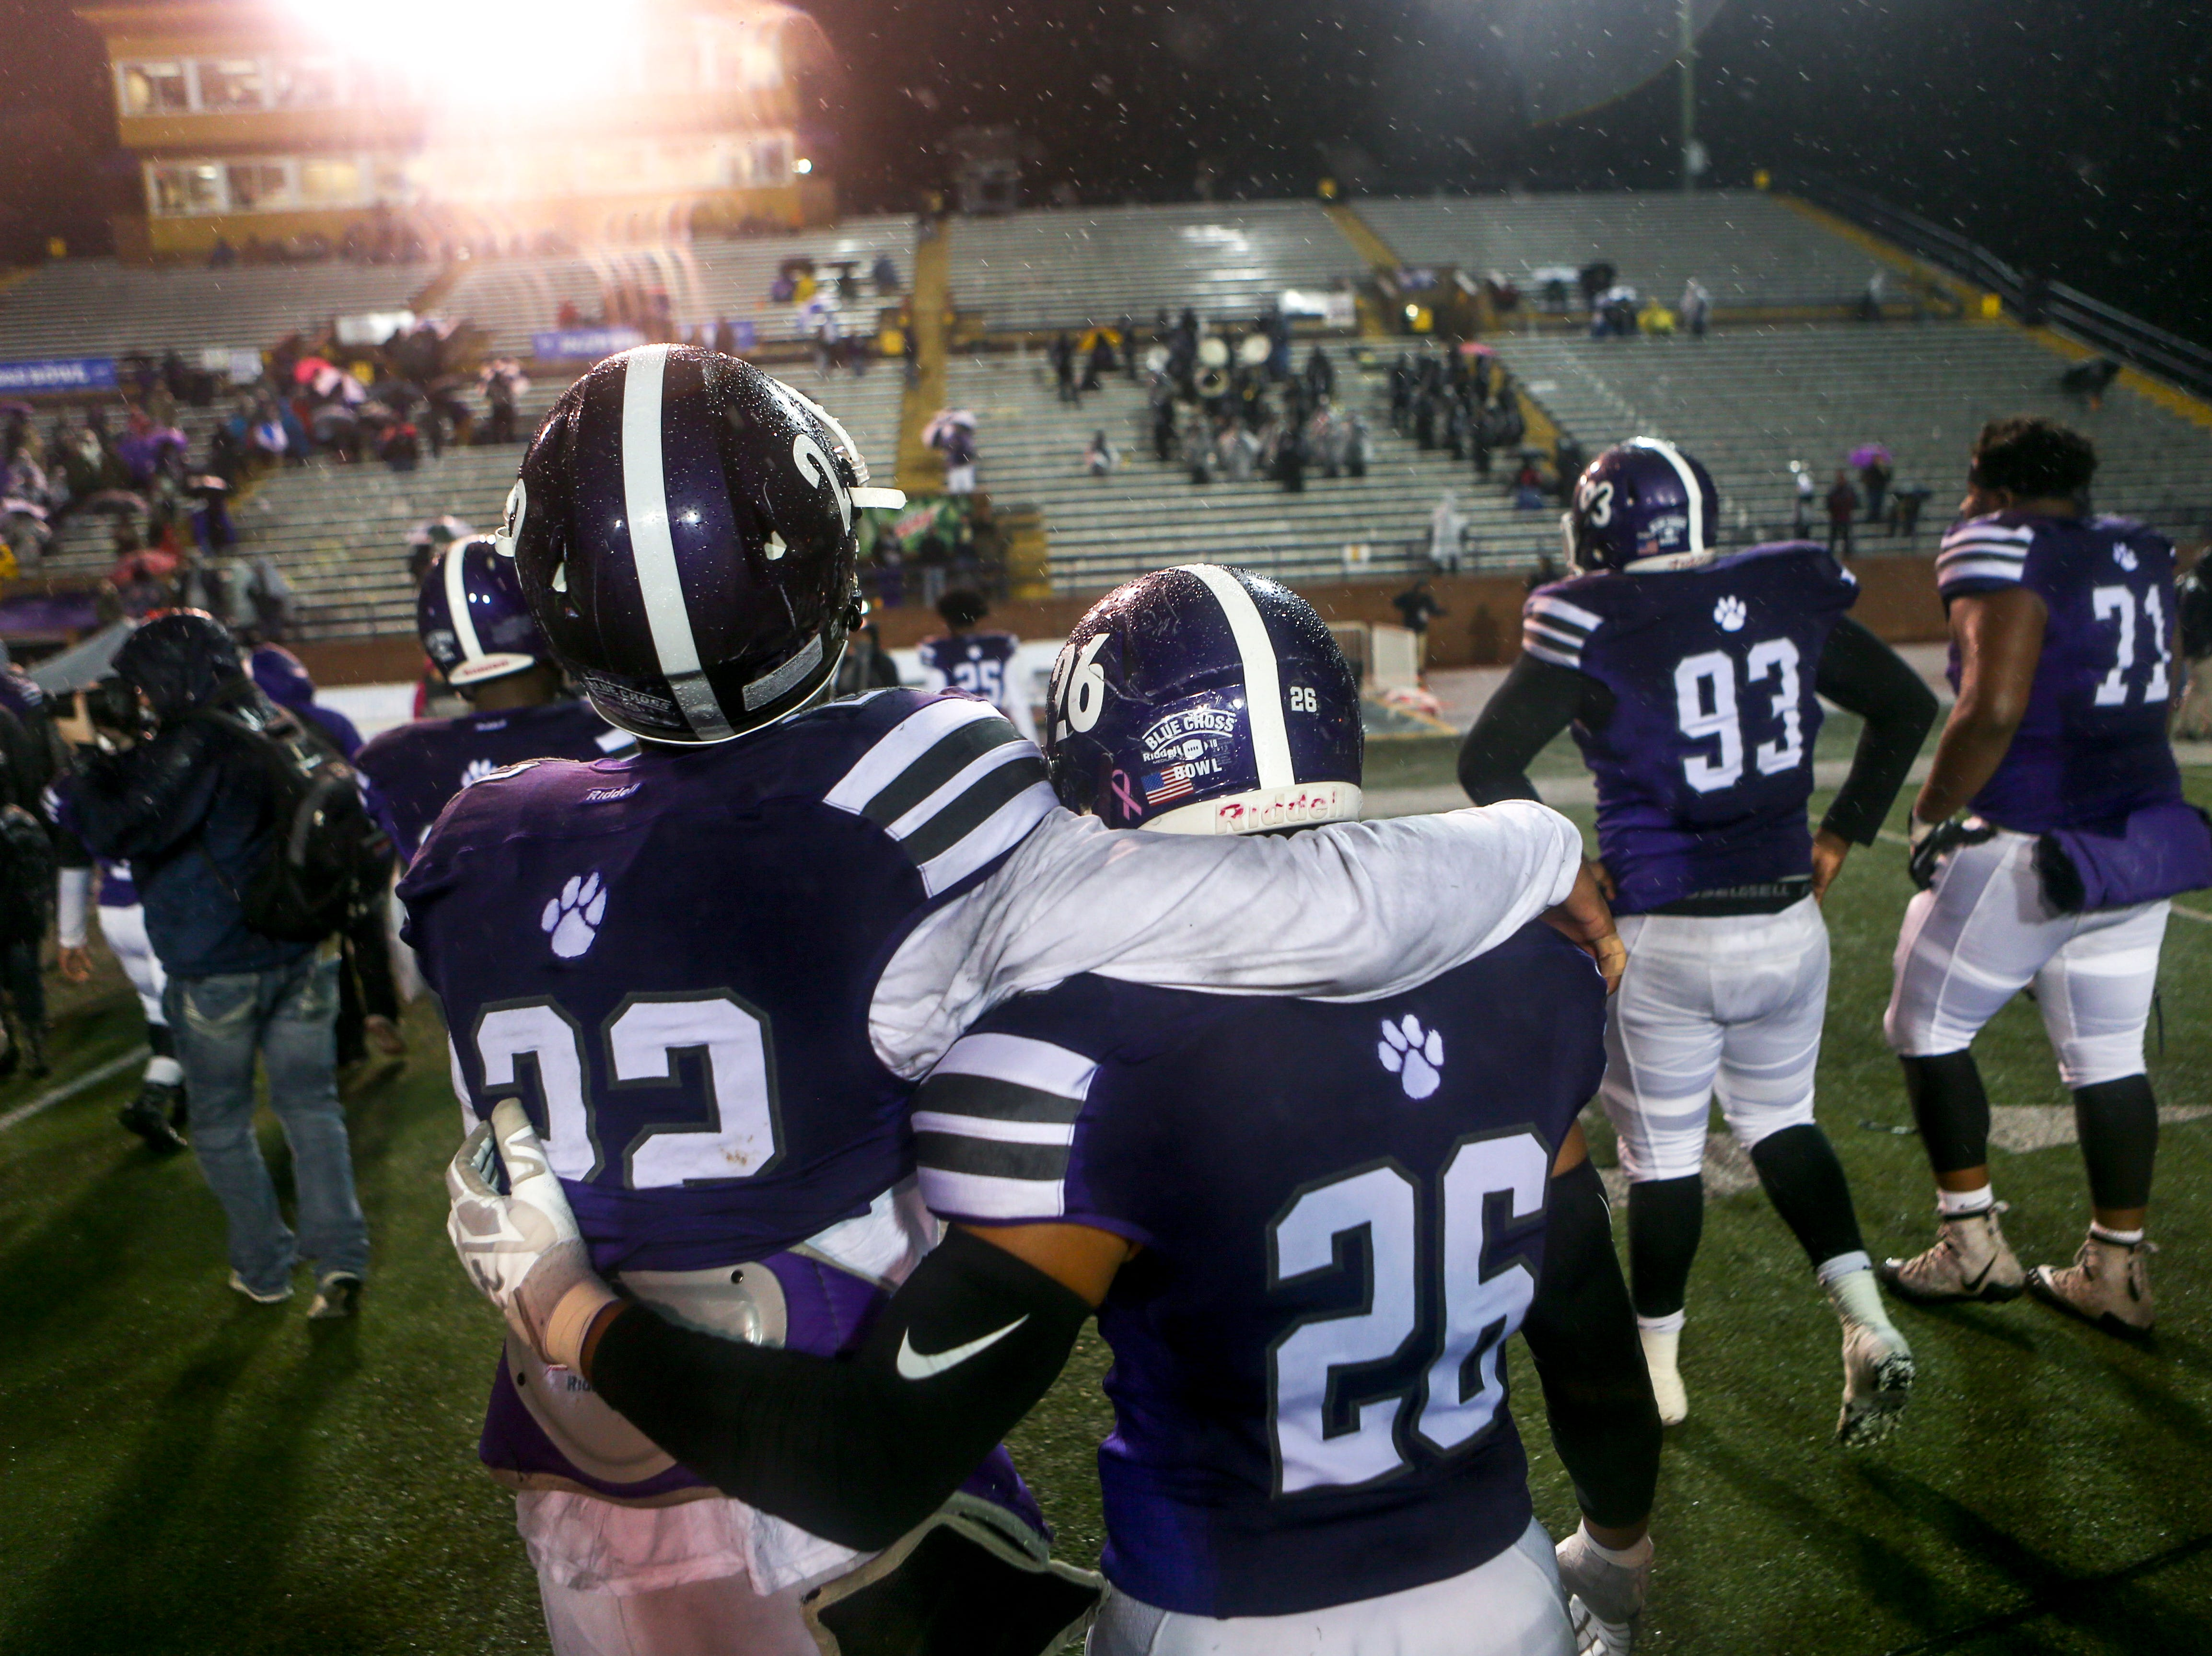 Haywood's Jadarius Tyus (22) and Haywood's Terrion Wilks (26) walk arm in arm off of the field after losing the Class 4A Blue Cross Bowl between Haywood and Greeneville at Tennessee Tech's Tucker Stadium in Cookeville, Tenn., on Thursday, Nov. 29, 2018.